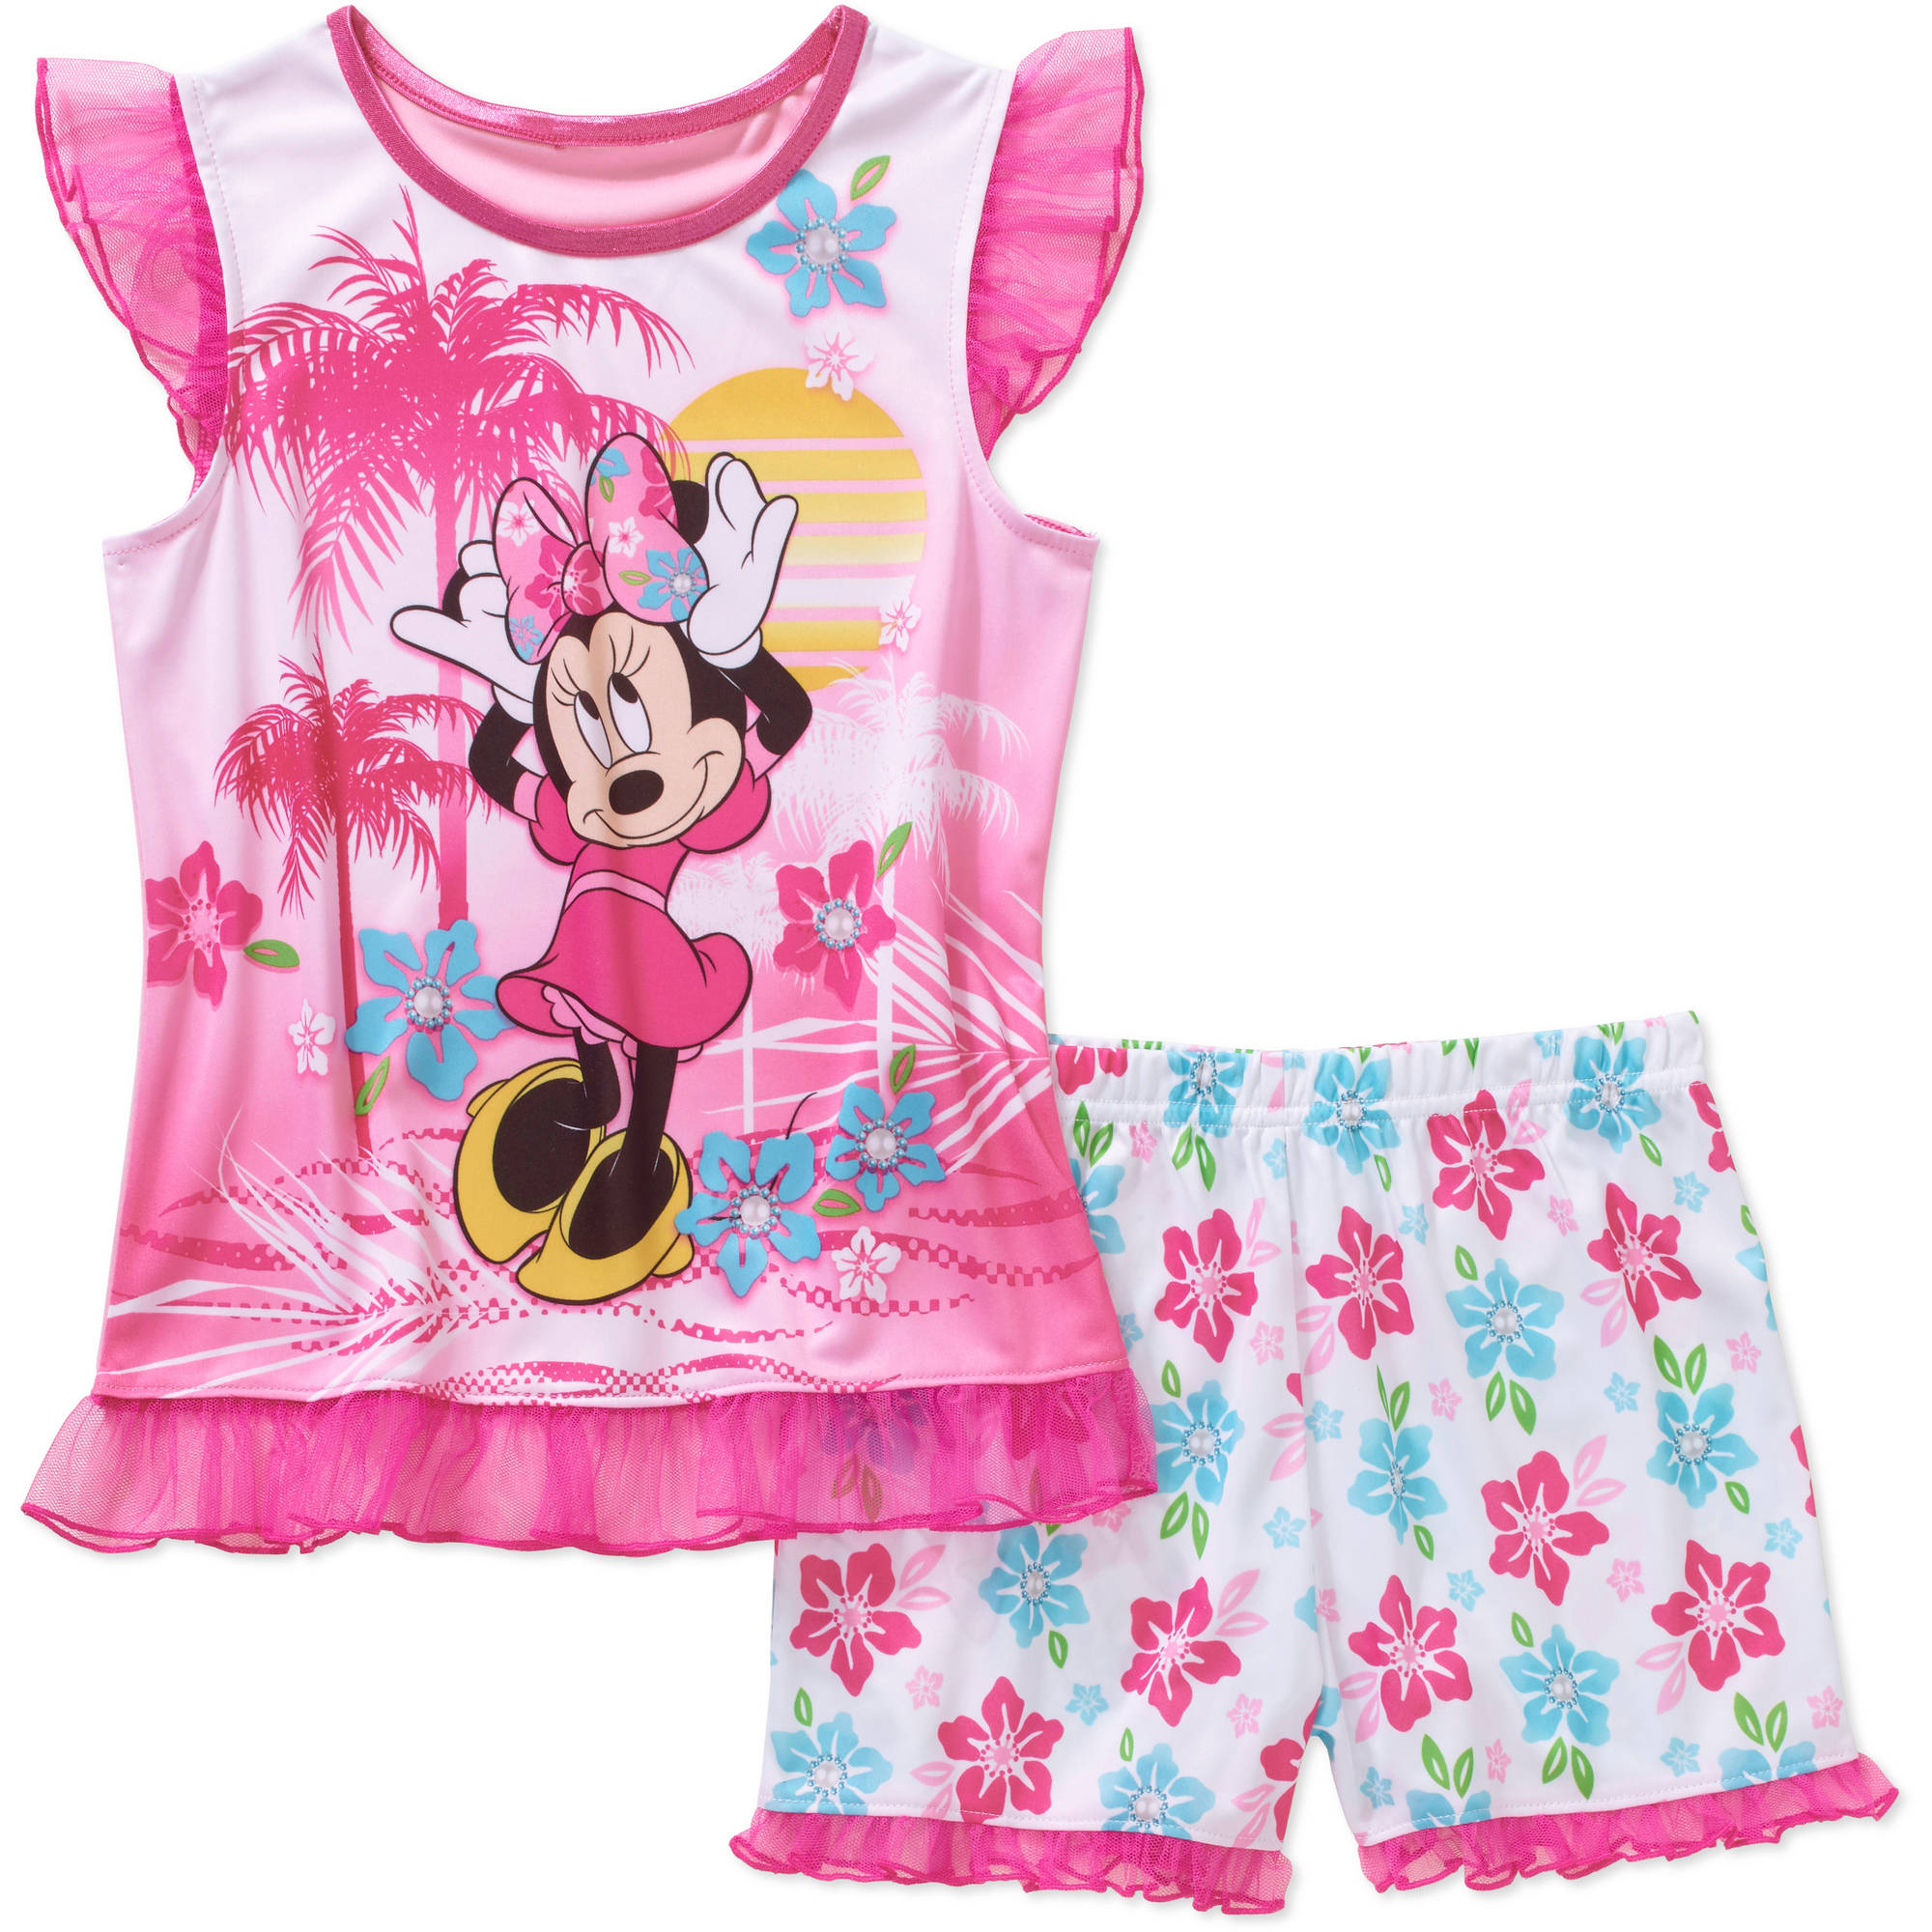 Girls' Sleepwear - Walmart.com